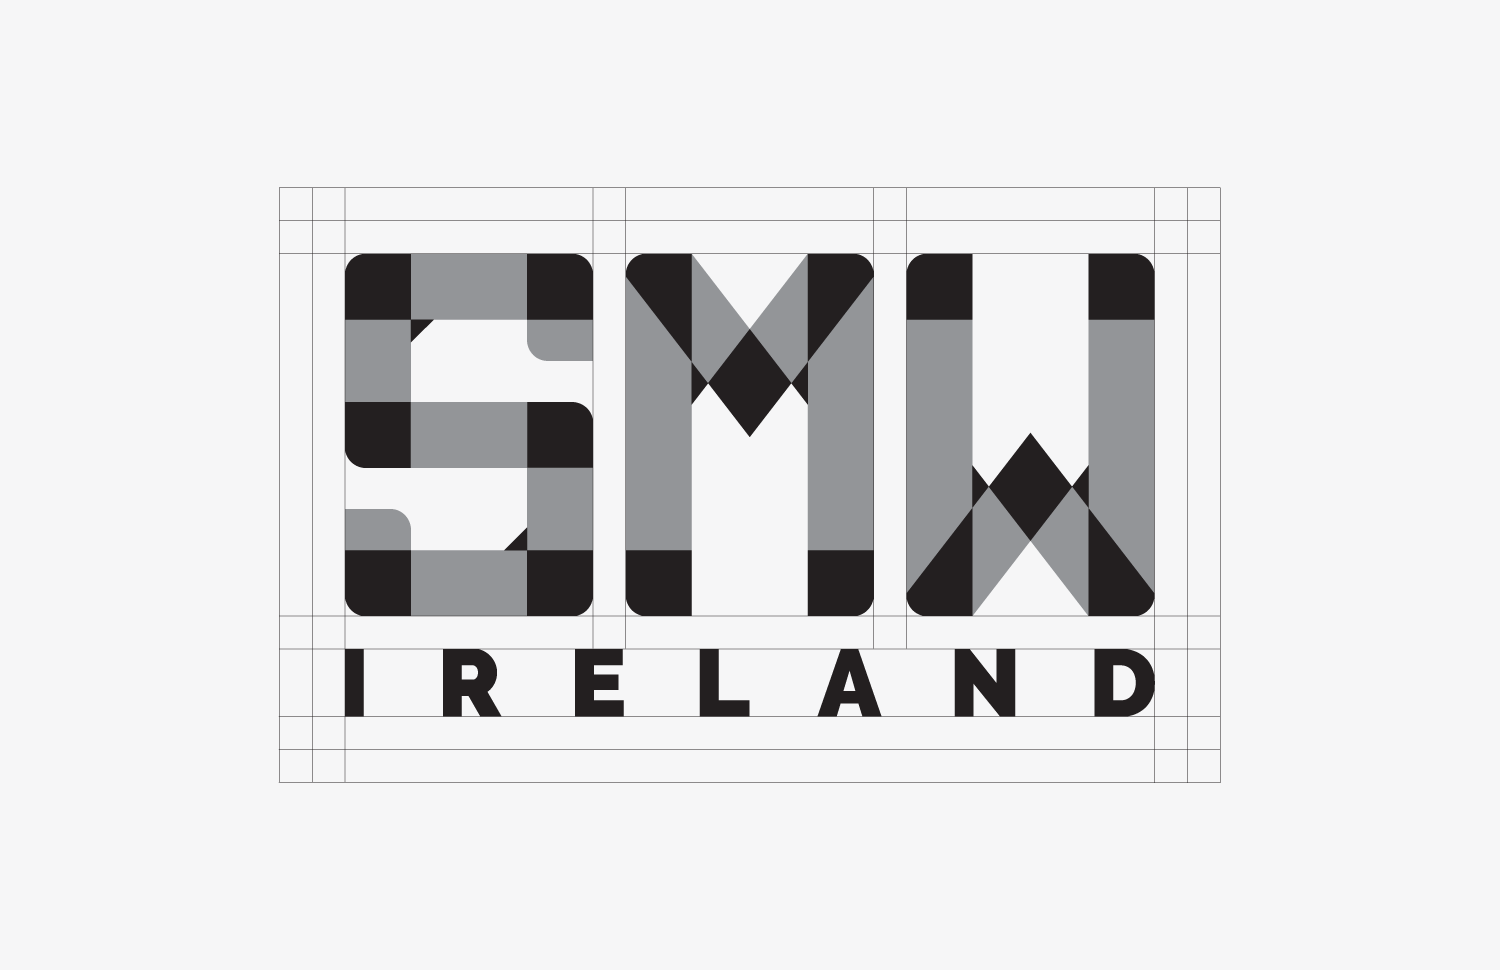 Social media week ireland logo design project